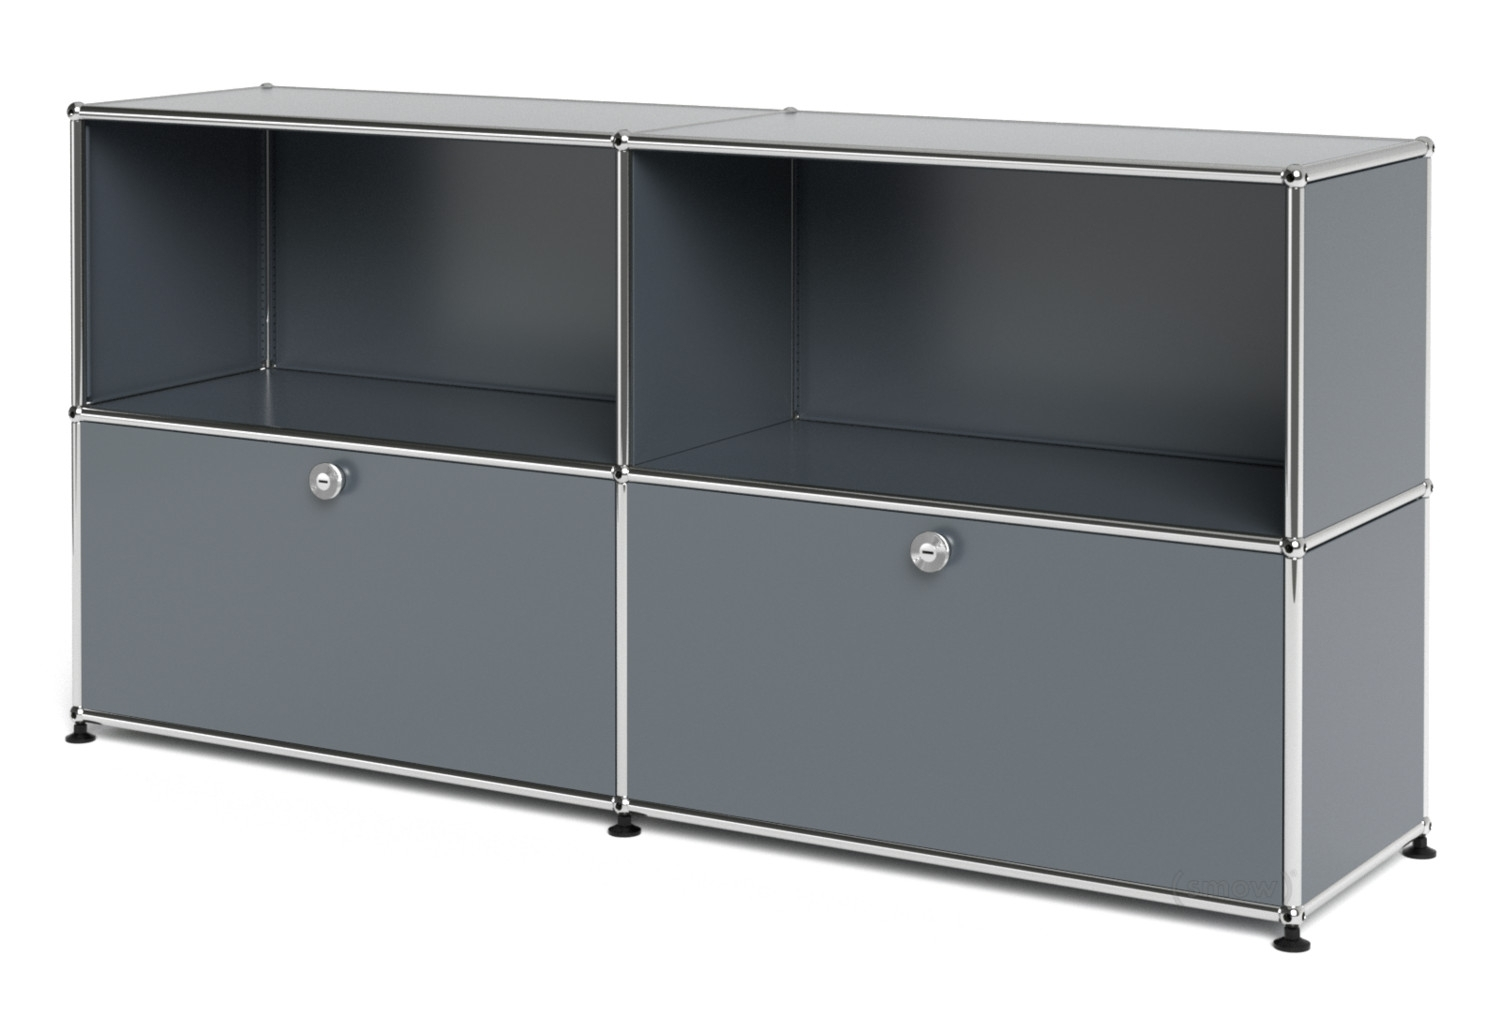 Usm Haller Sideboard L, Customisable, Mid Grey Ral 7005, Open, With intended for Open Shelf Brass 4-Drawer Sideboards (Image 25 of 30)